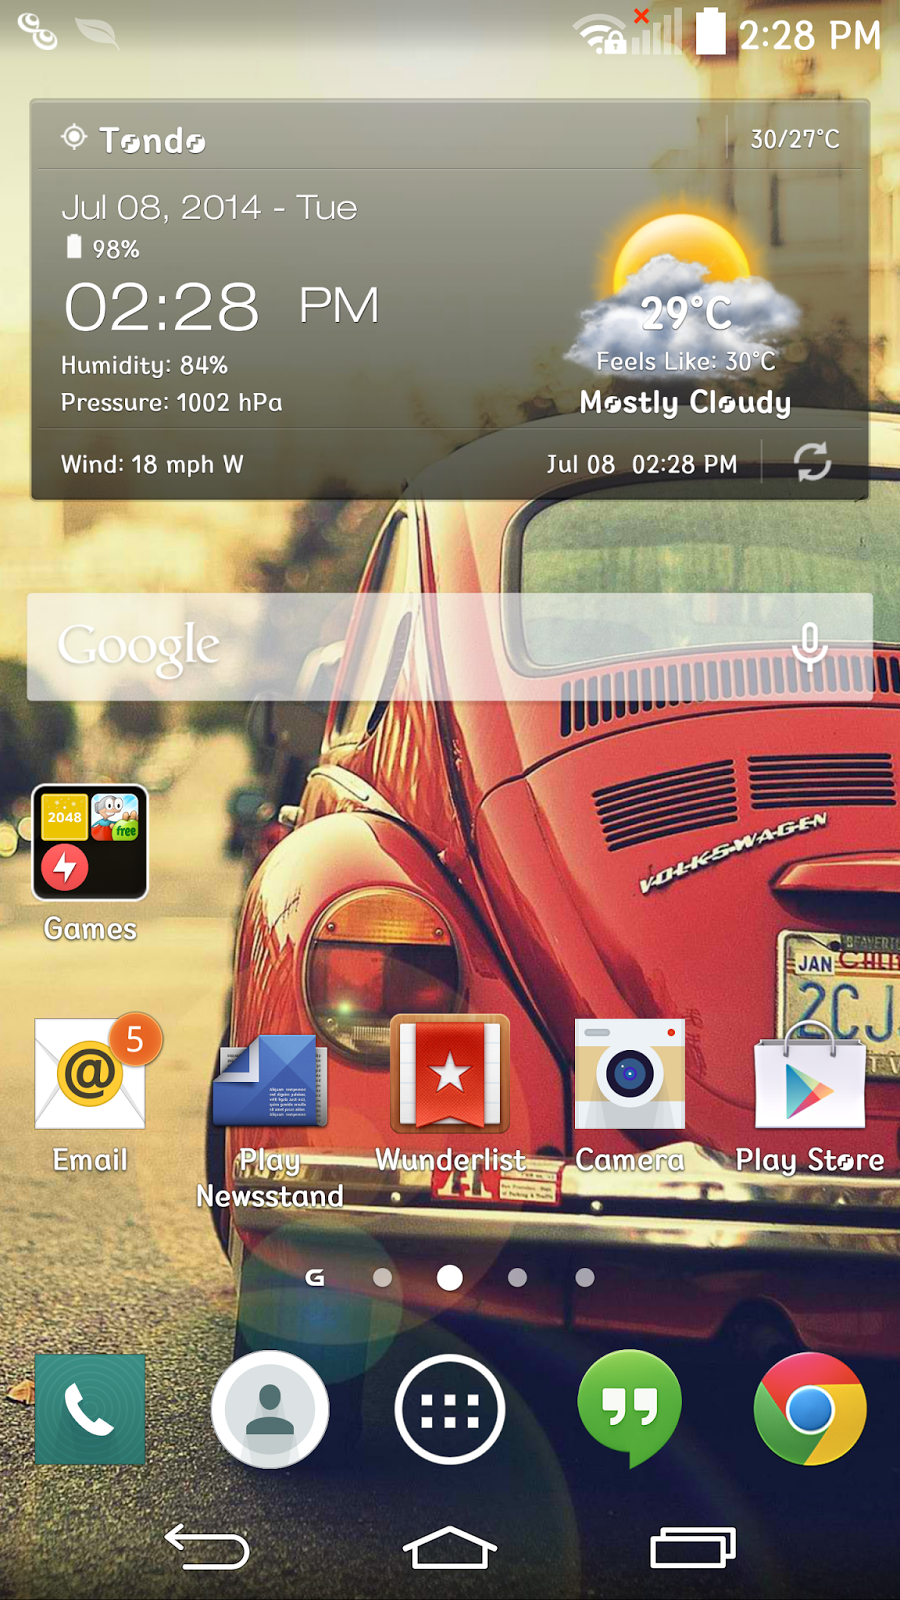 LG G3 simplified user interface